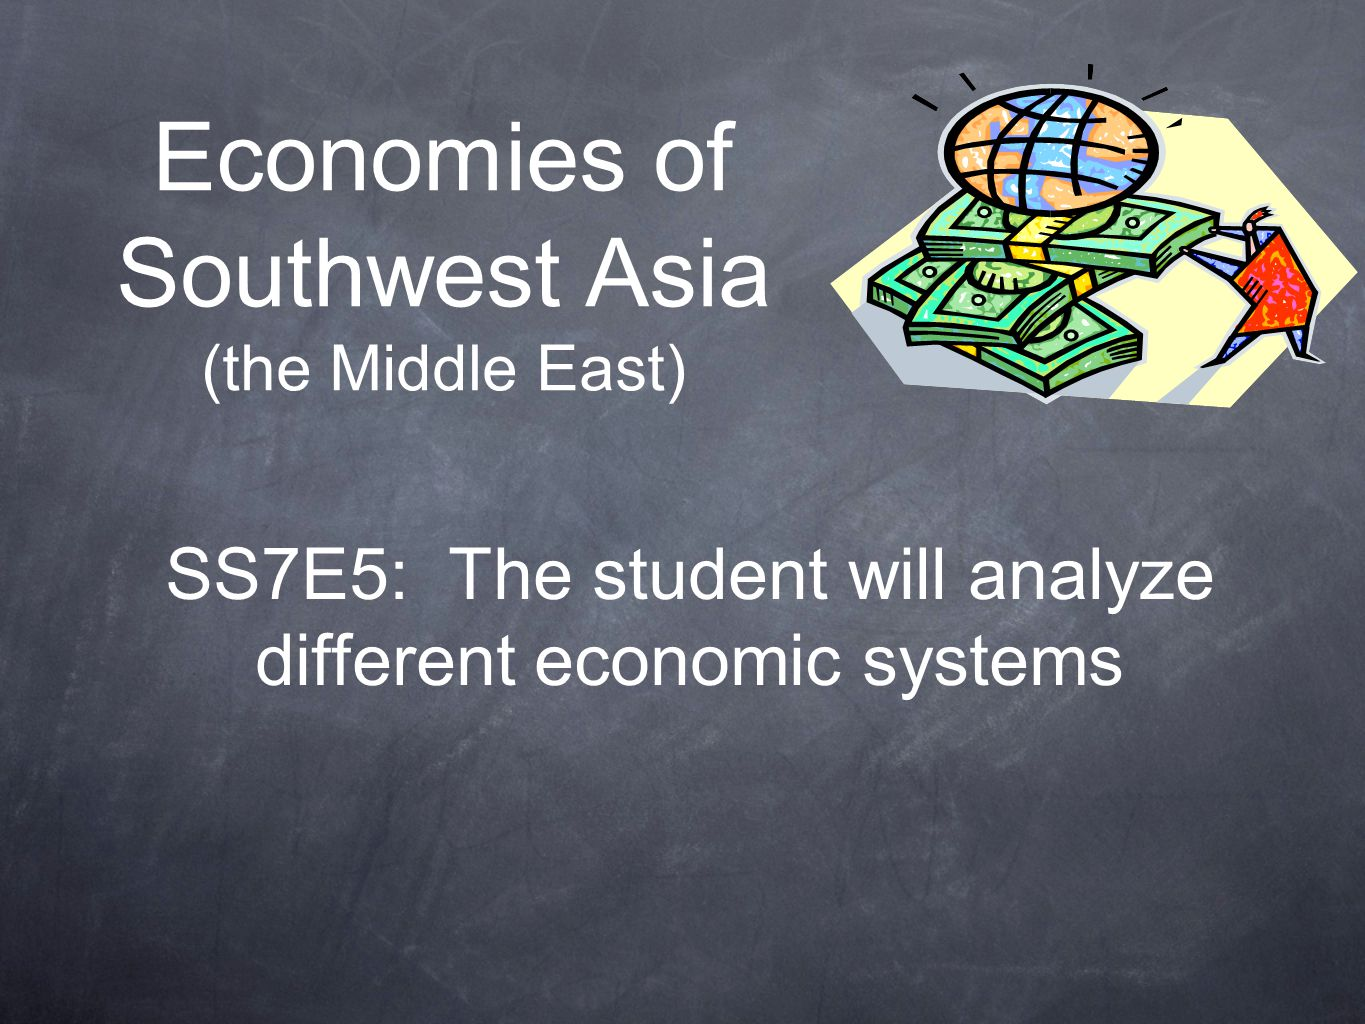 Economies of Southwest Asia (the Middle East) SS7E5: The student will analyze different economic systems